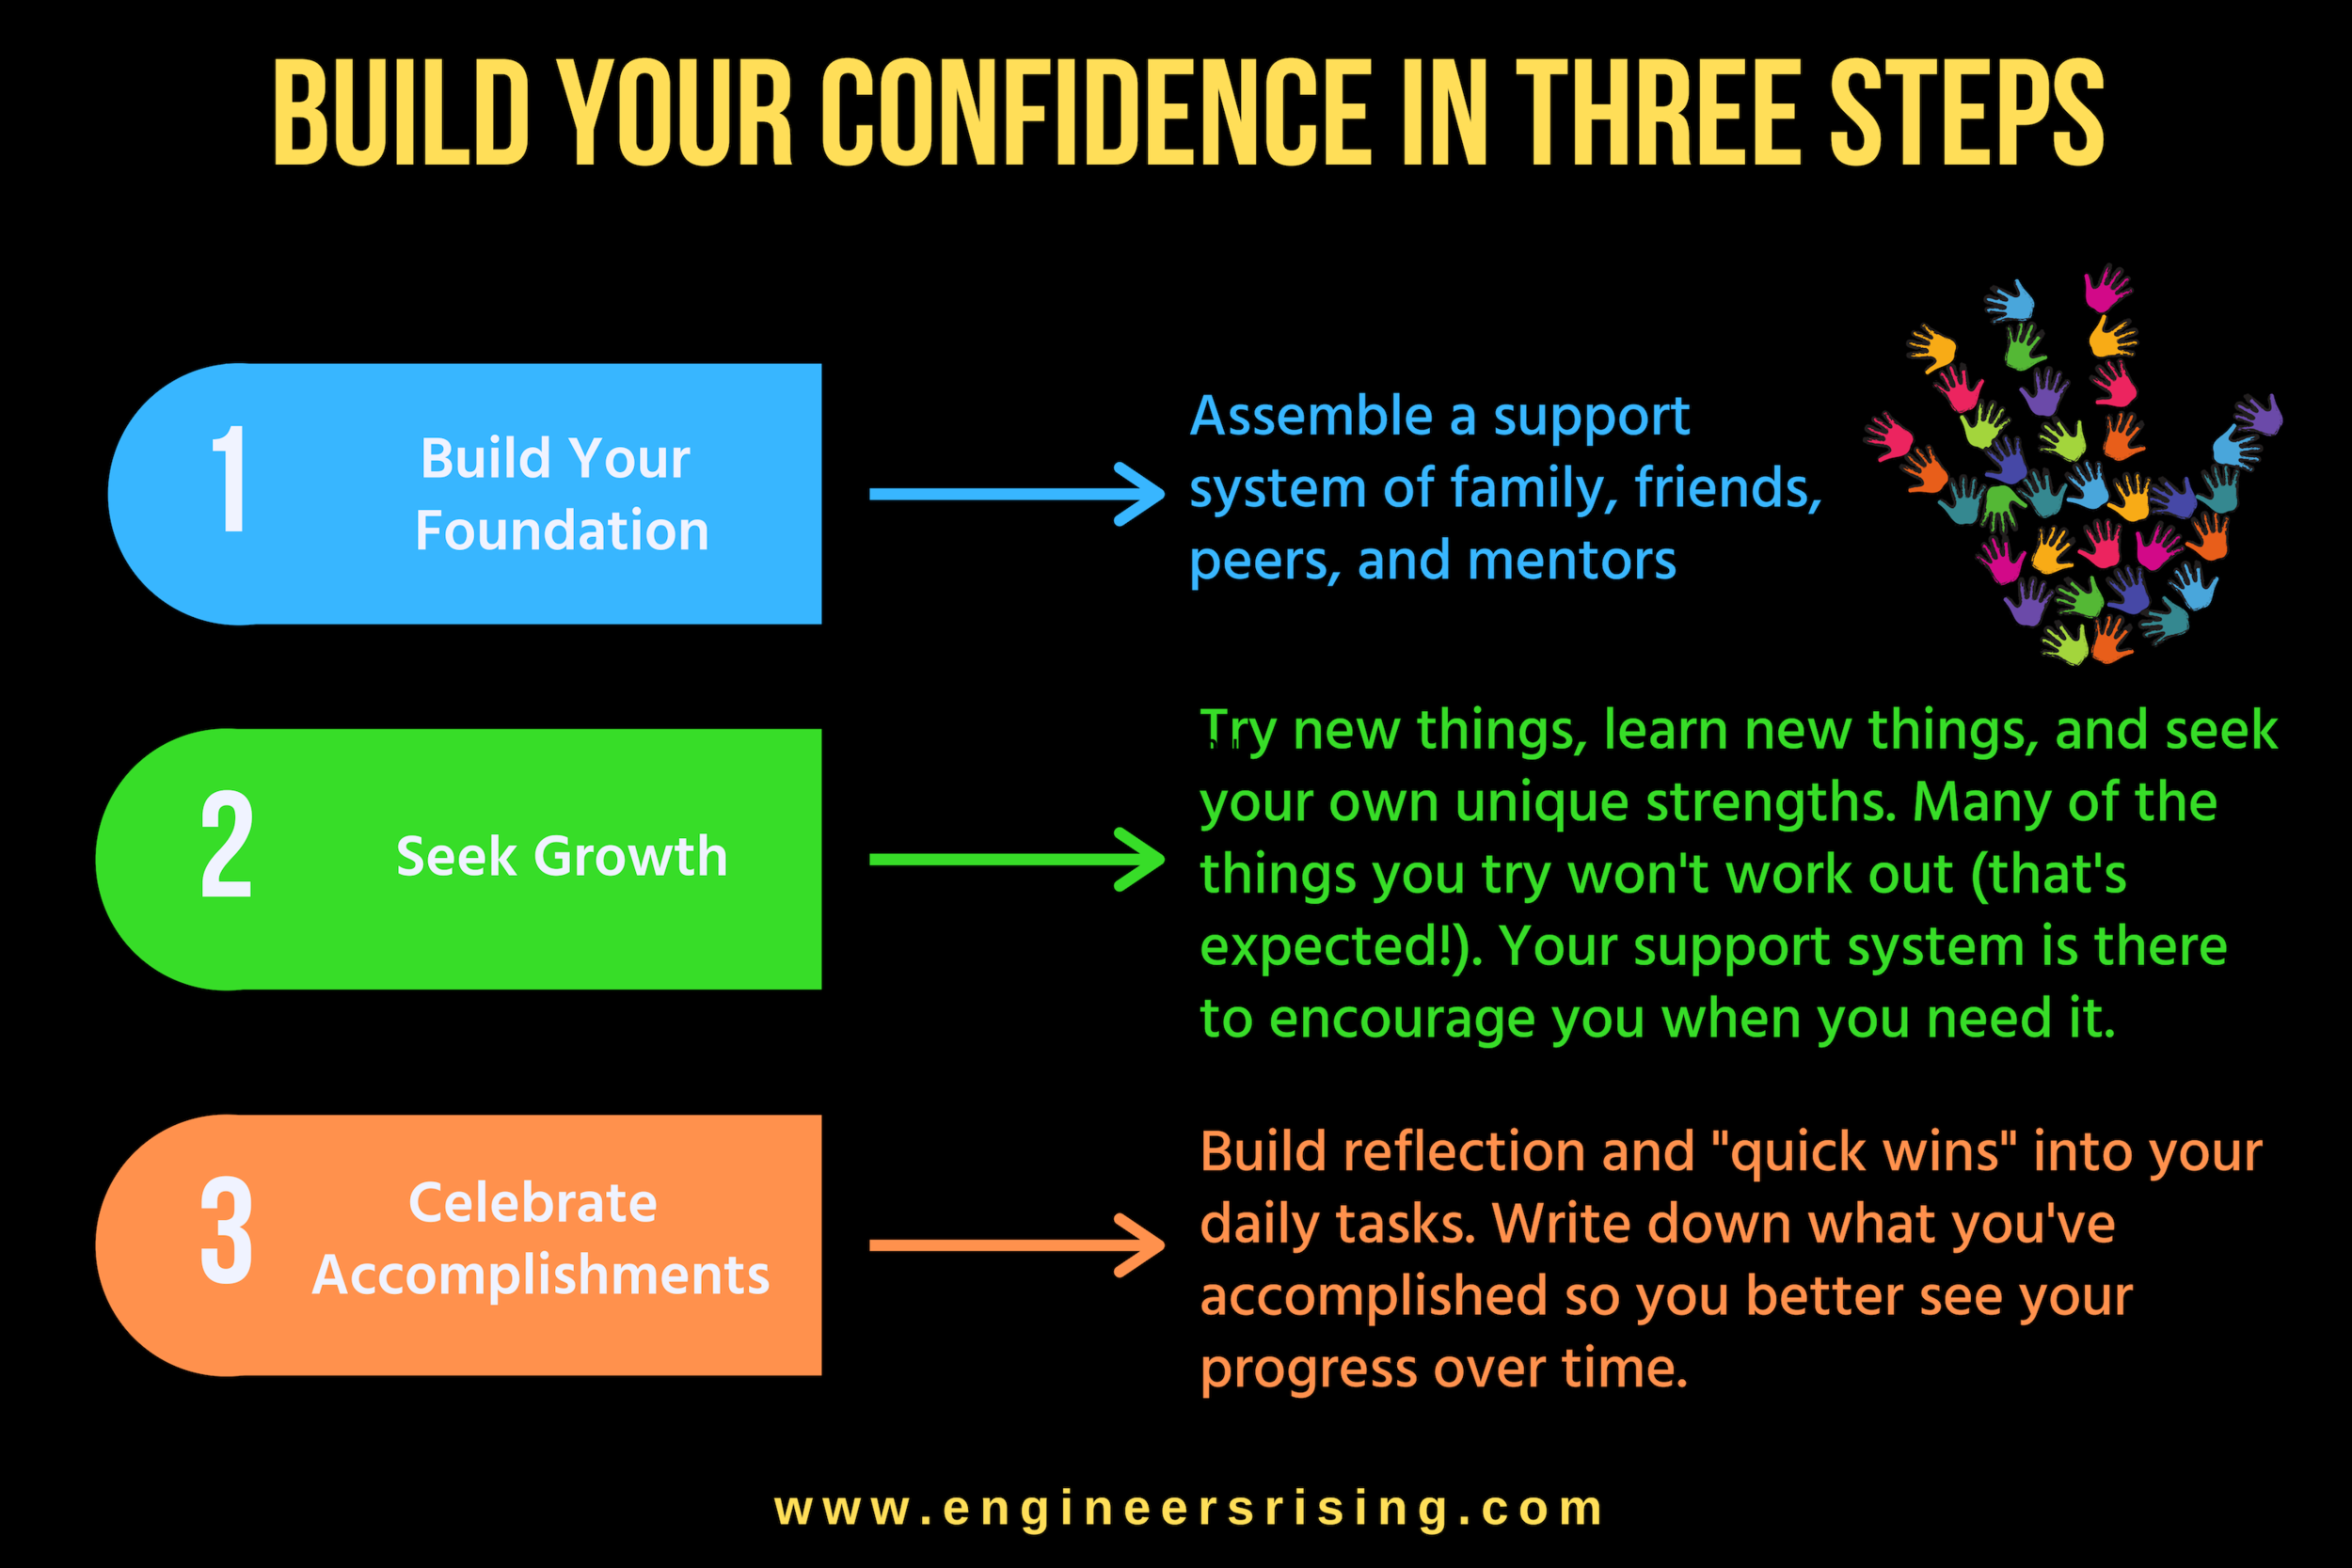 Build Confidence to Stop Feeling Restless